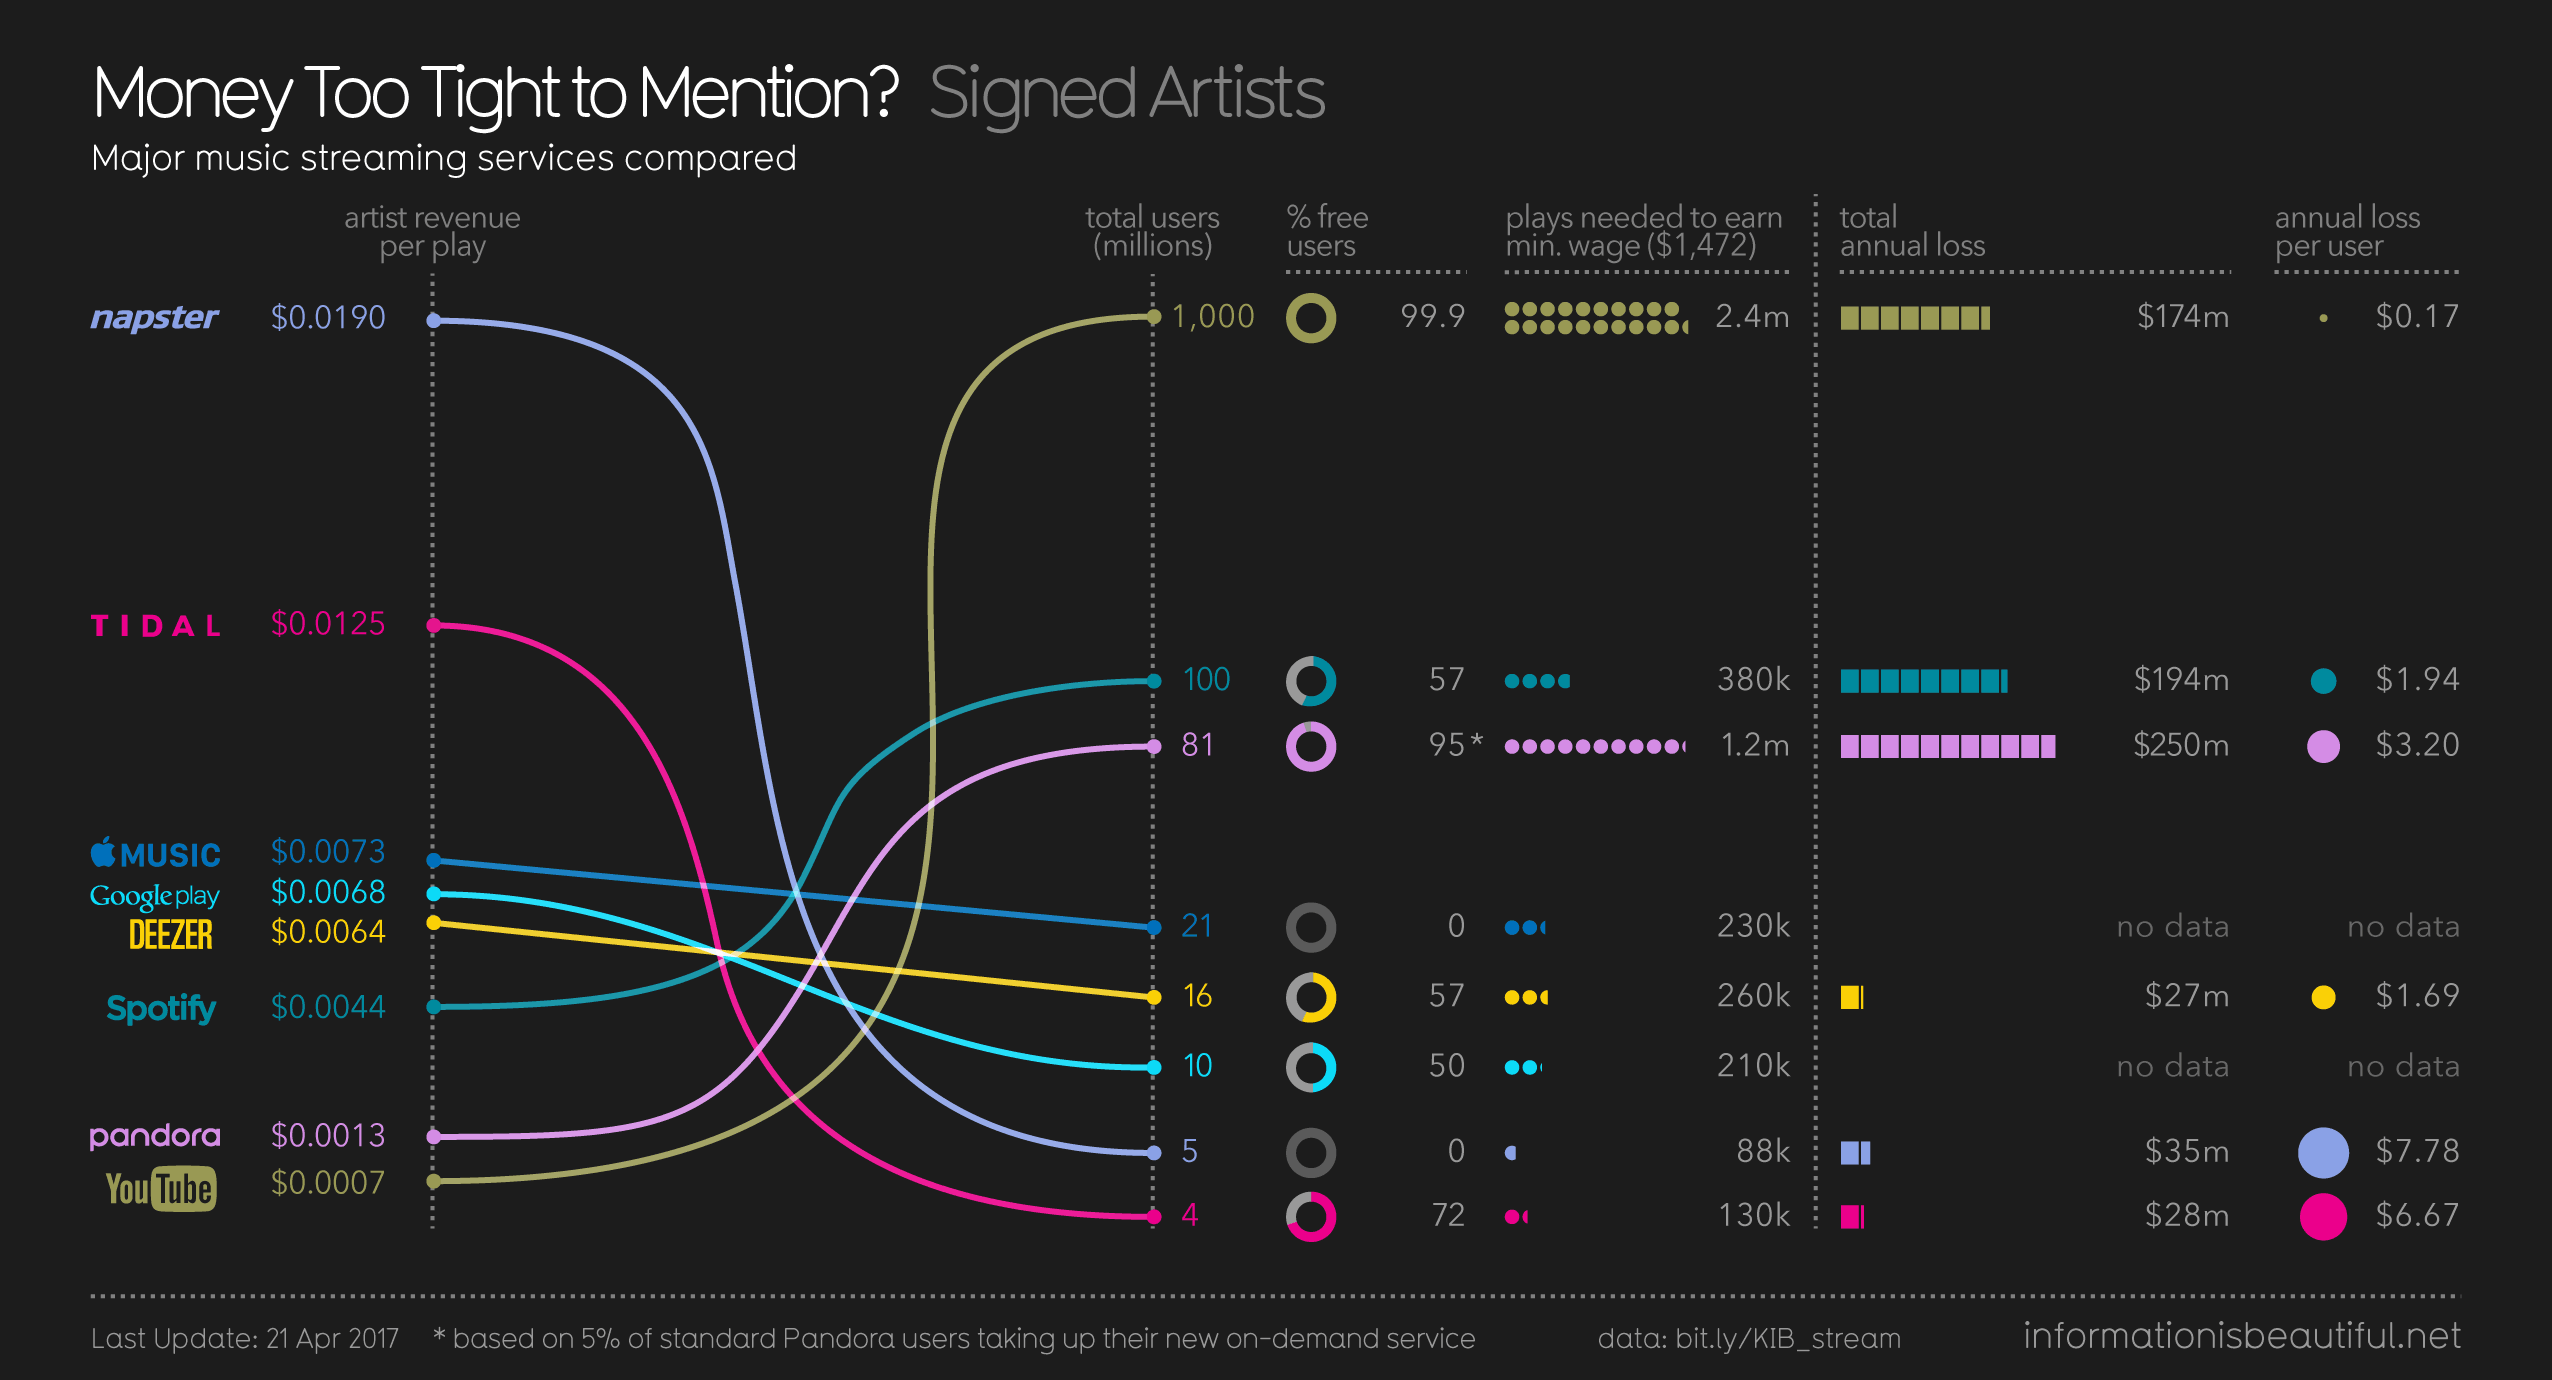 2552-musicians-streaming_signed-6.png